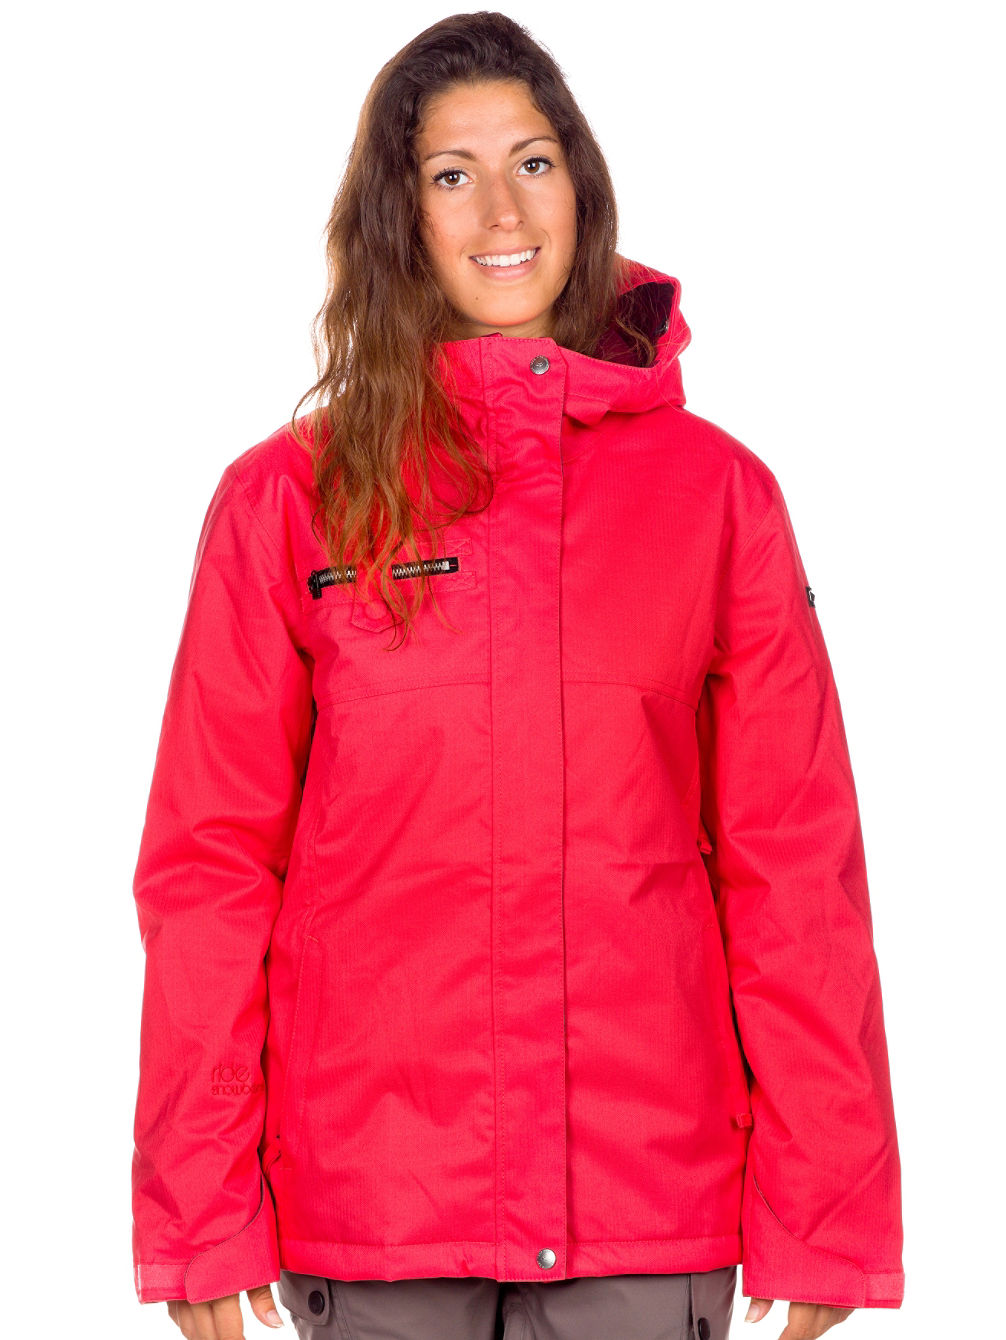 Northgate Insulated Jacket Women